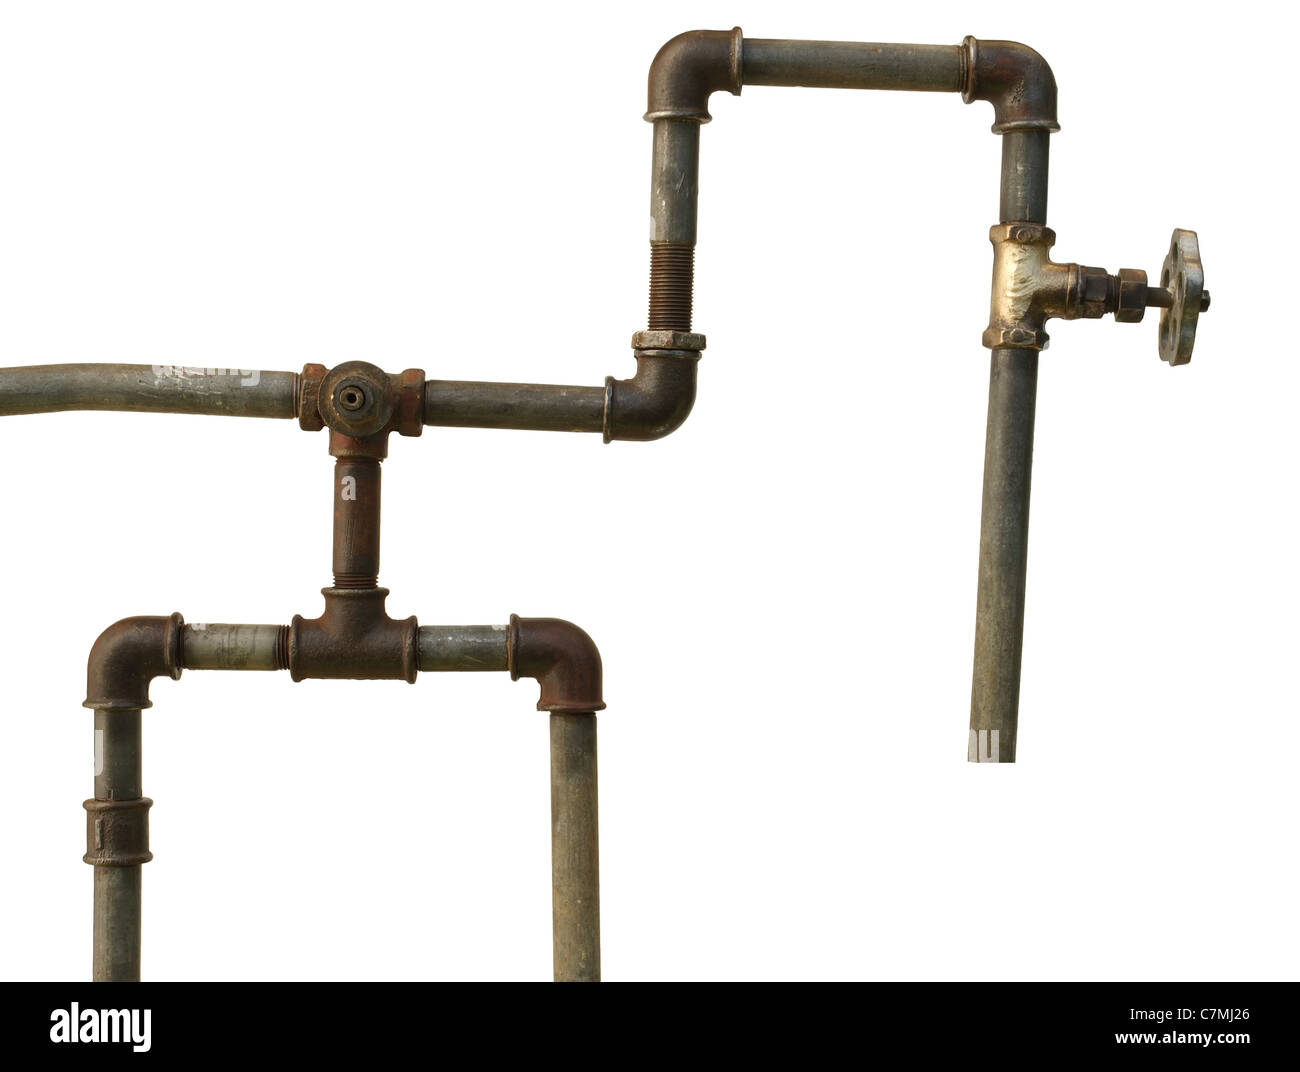 A fragment of the old water conduit consisting of pipes, fittings and valve - Stock Image